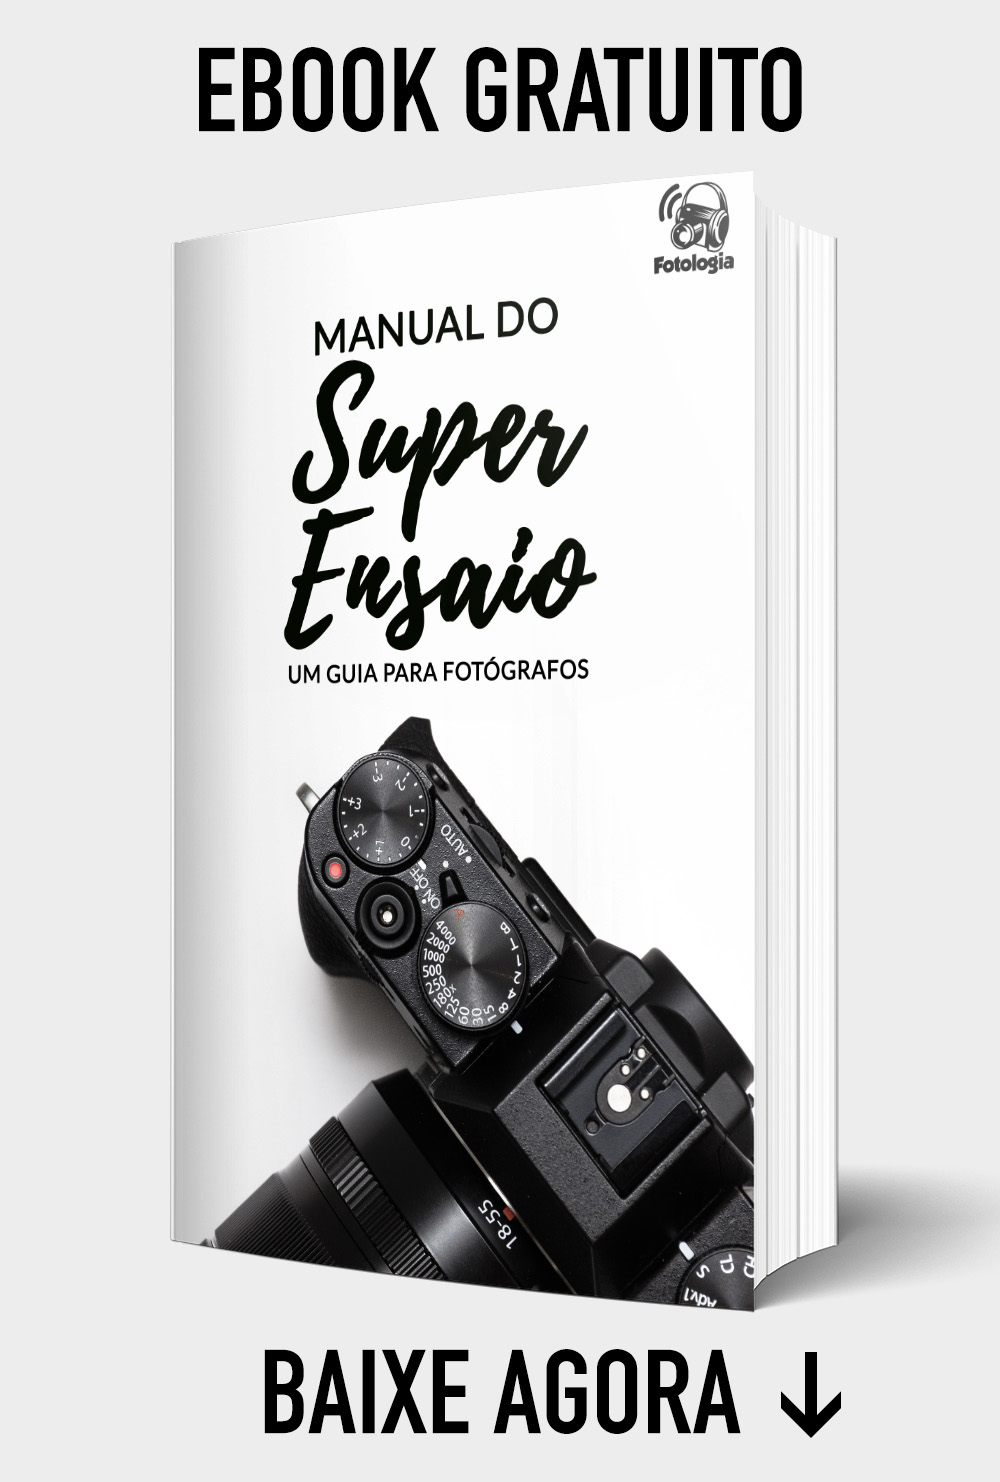 EBOOK MANUAL DO SUPER ENSAIO